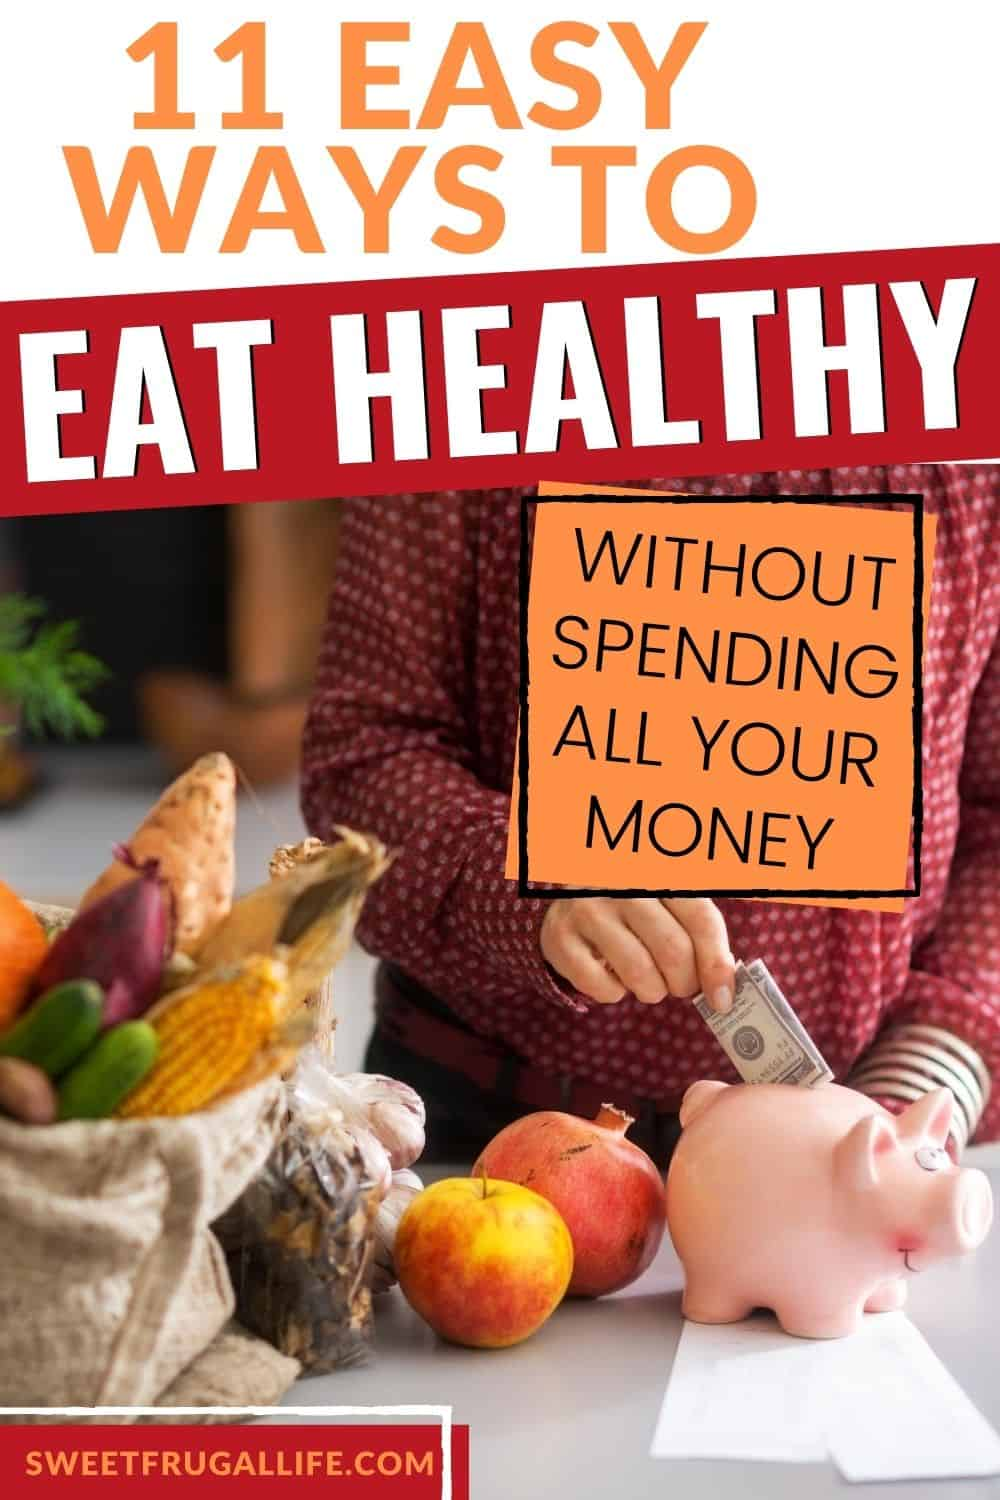 eat healthy for cheap - save money on healthy food